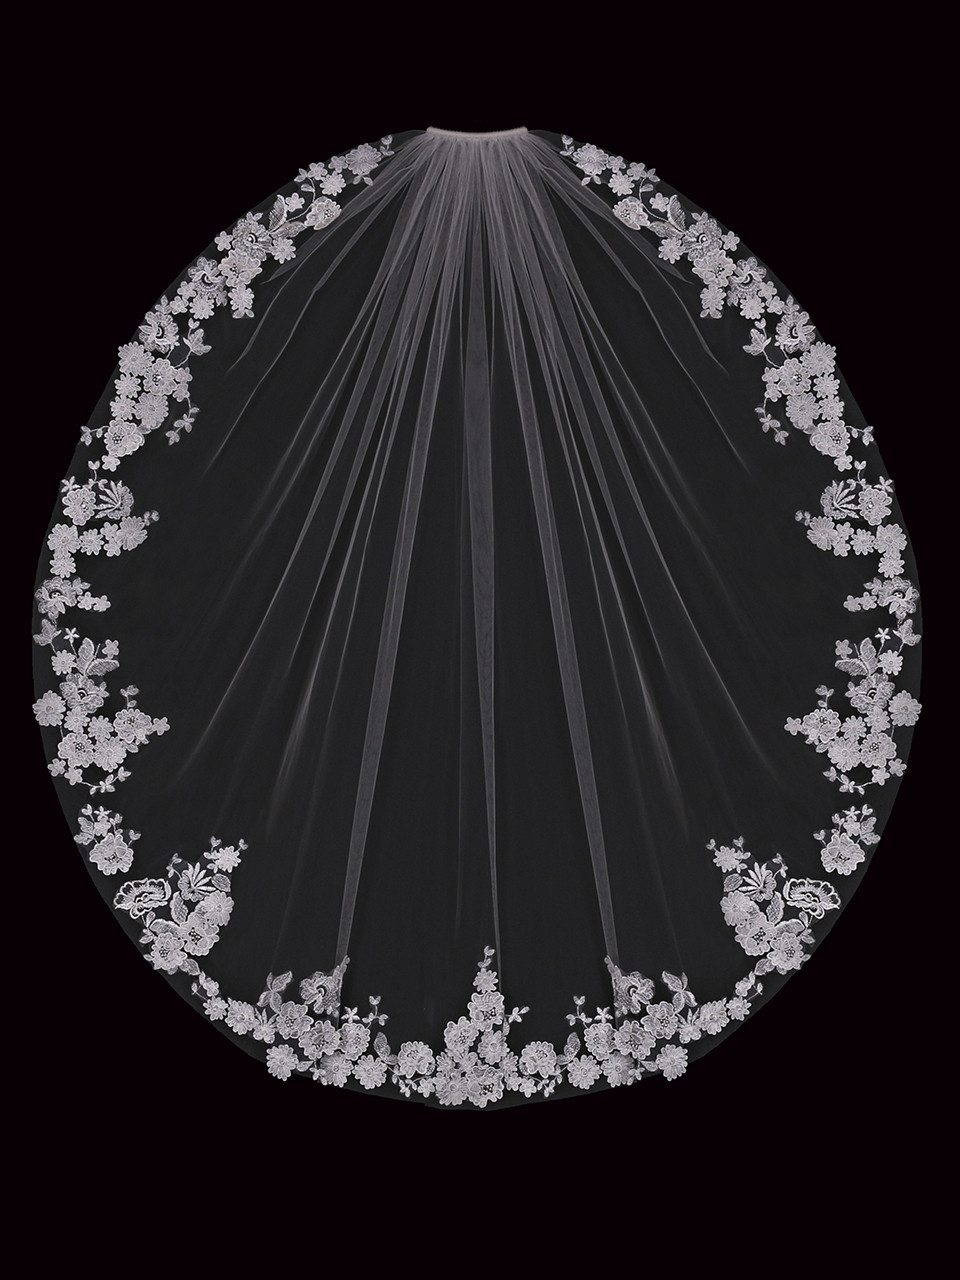 En Vogue Bridal Style V2287SF - English Tulle Bridal Veil With Lace Appliques - 41 Inches